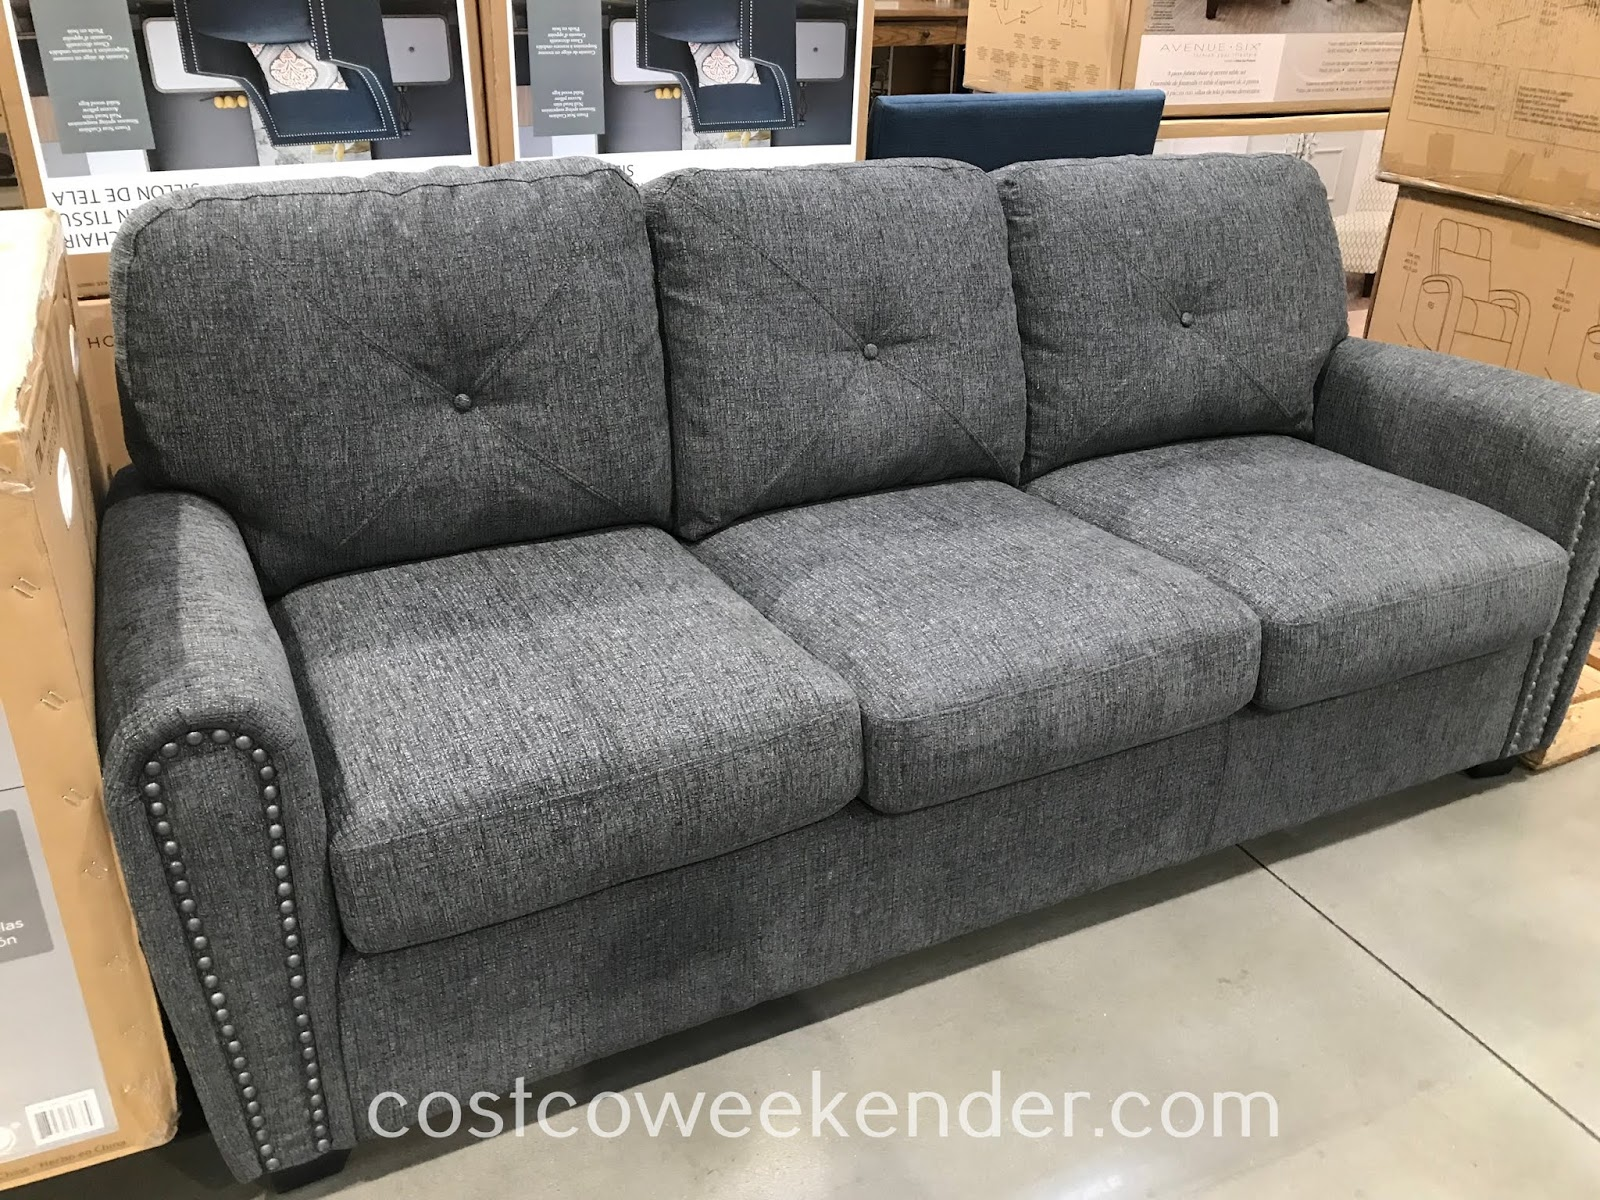 Sit comfortably or even spend the sleeping night on the Bainbridge Fabric Sleeper Sofa